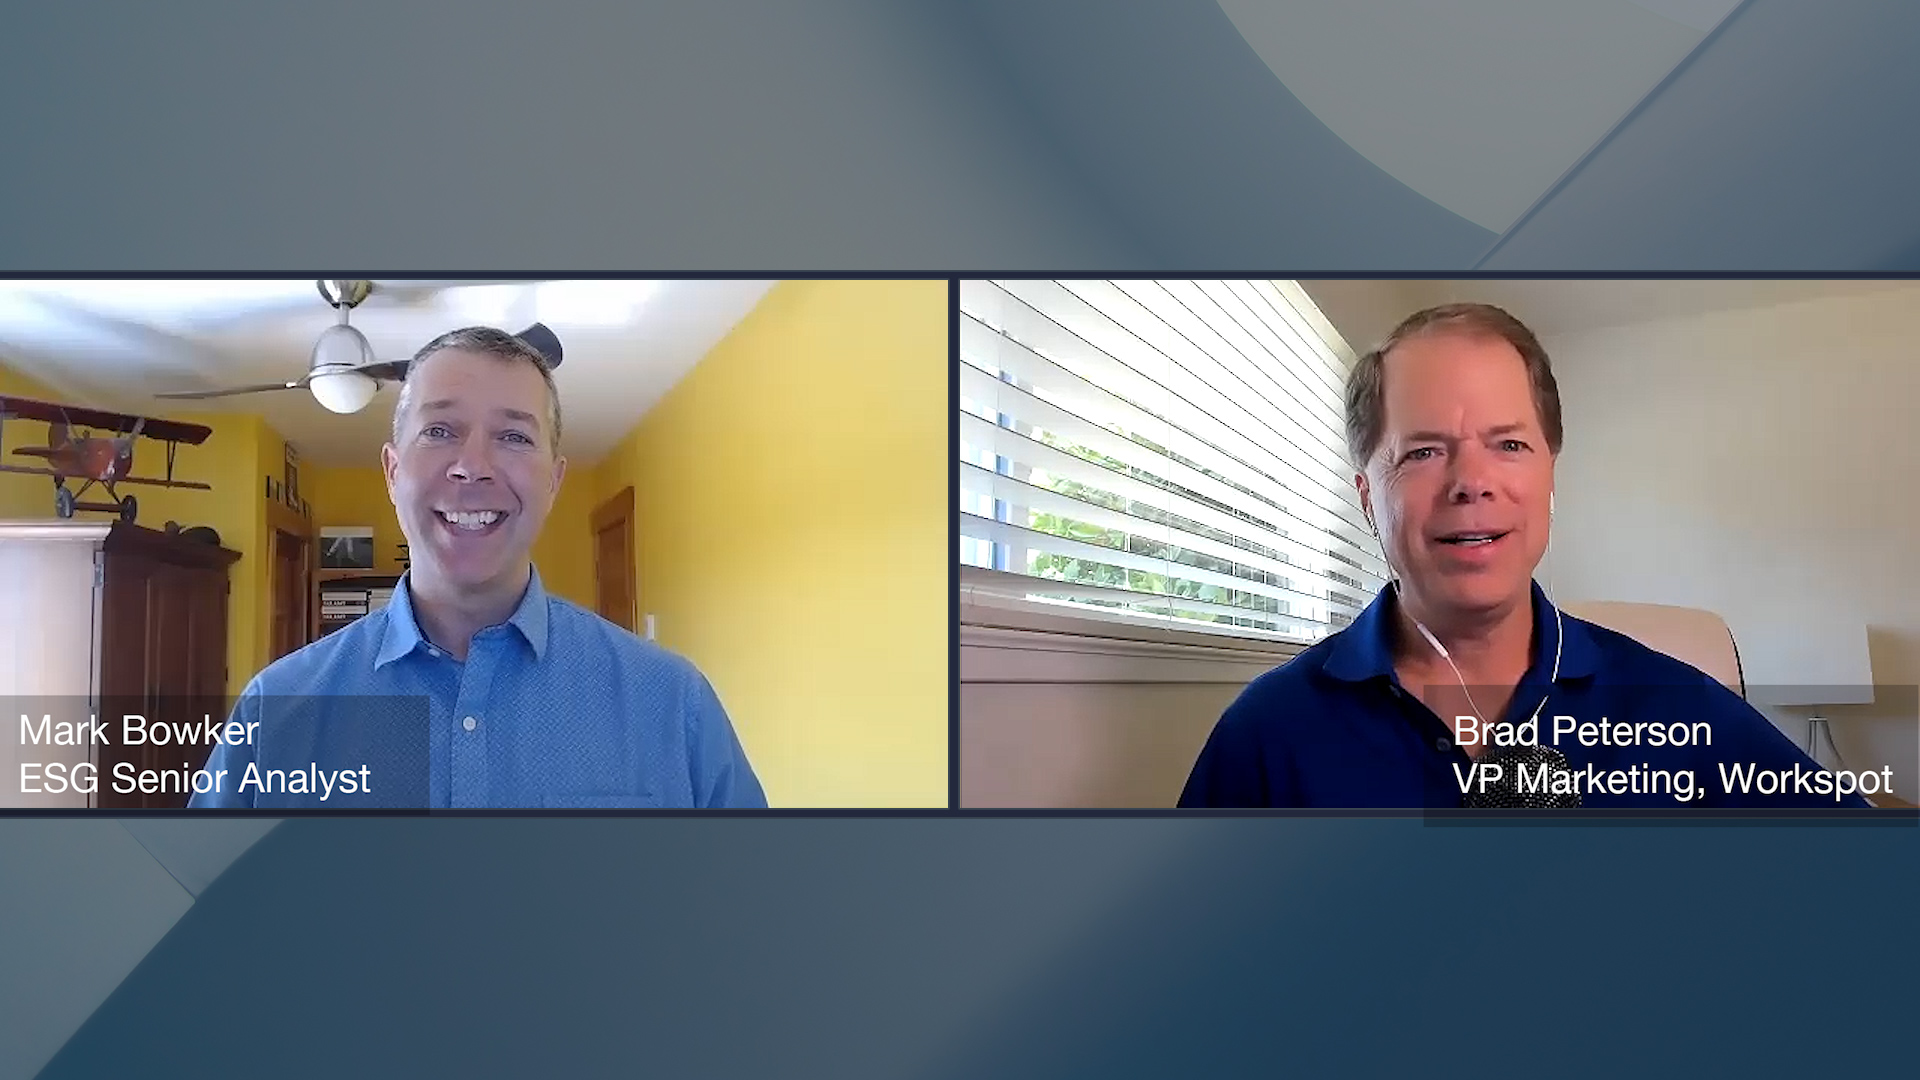 Double Daas? Video with Brad Peterson, VP Marketing, Workspot